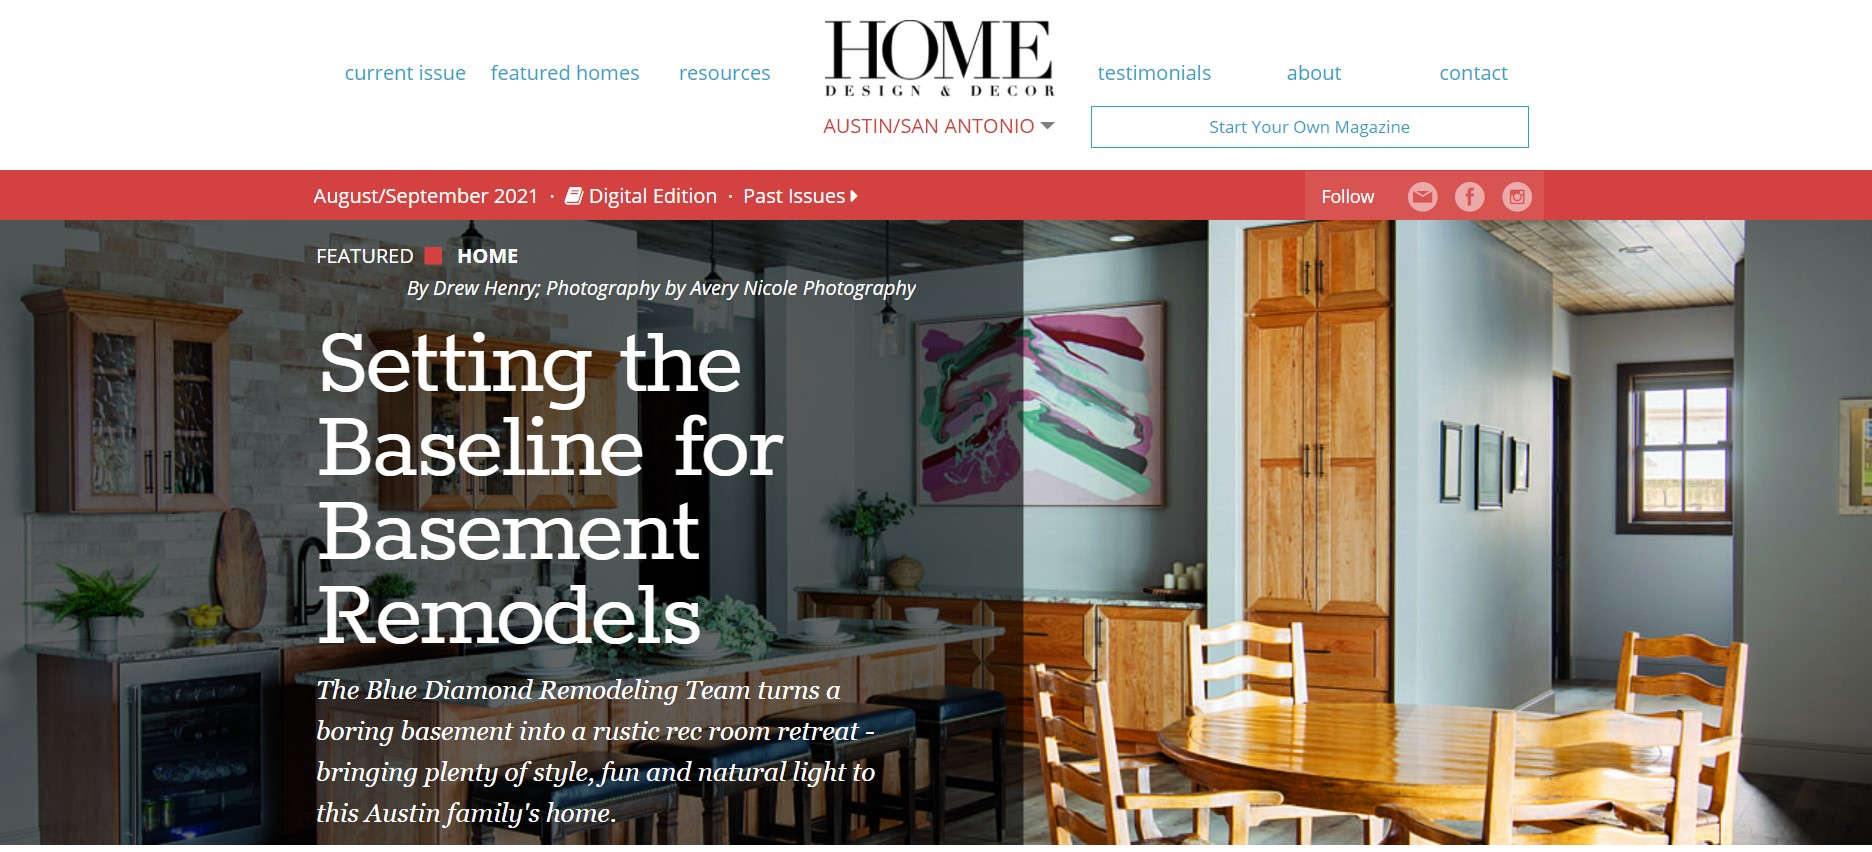 Home Design & Decor article about Blue Diamond Remodeling